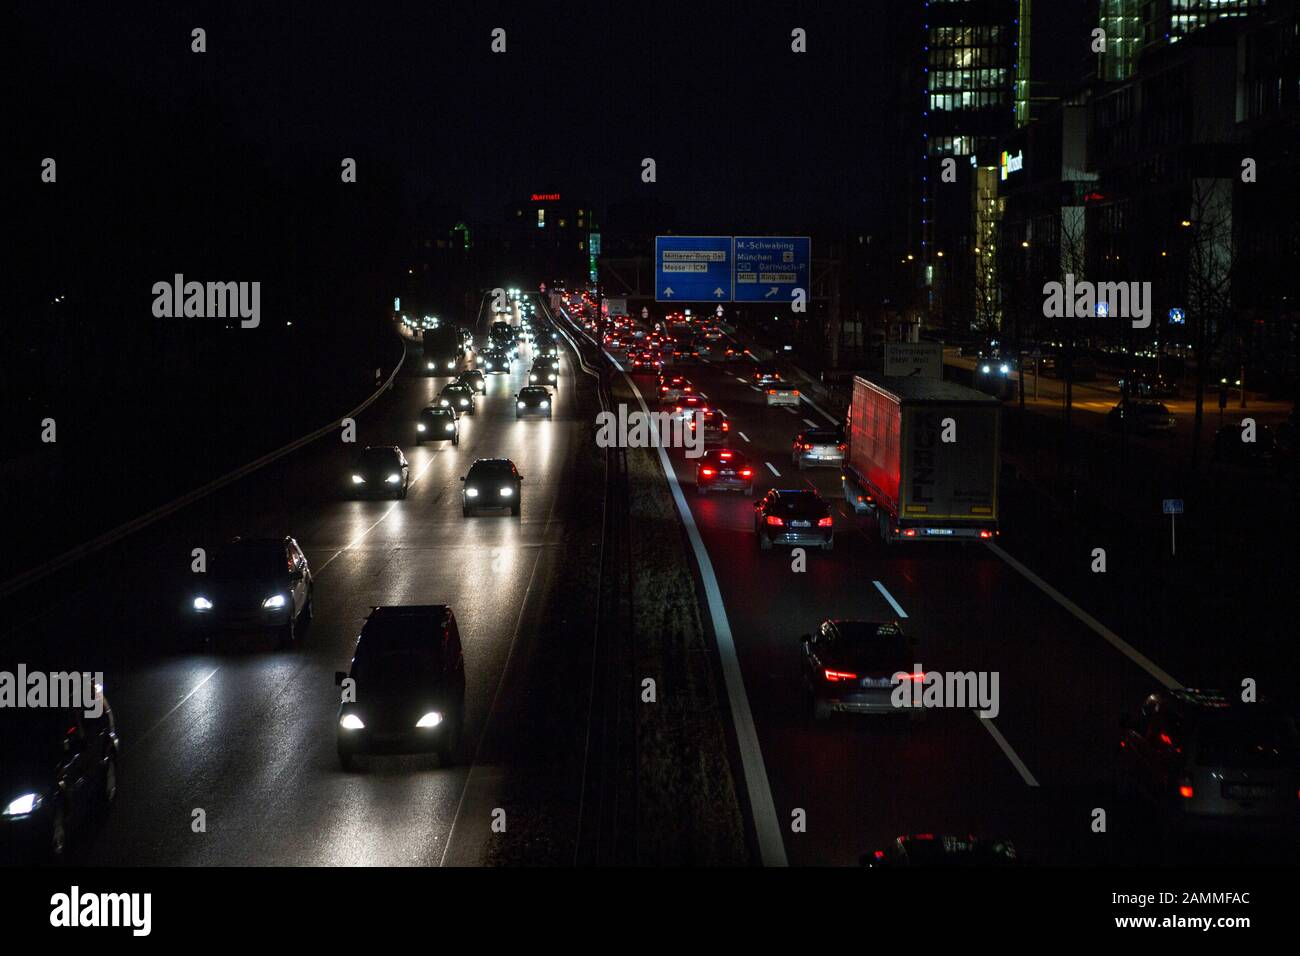 Take the slip road to the Nuremberg motorway A9 in Schwabing, on the right the exits Mittlerer Ring Ost and Mittlerer Ring West. [automated translation] Stock Photo